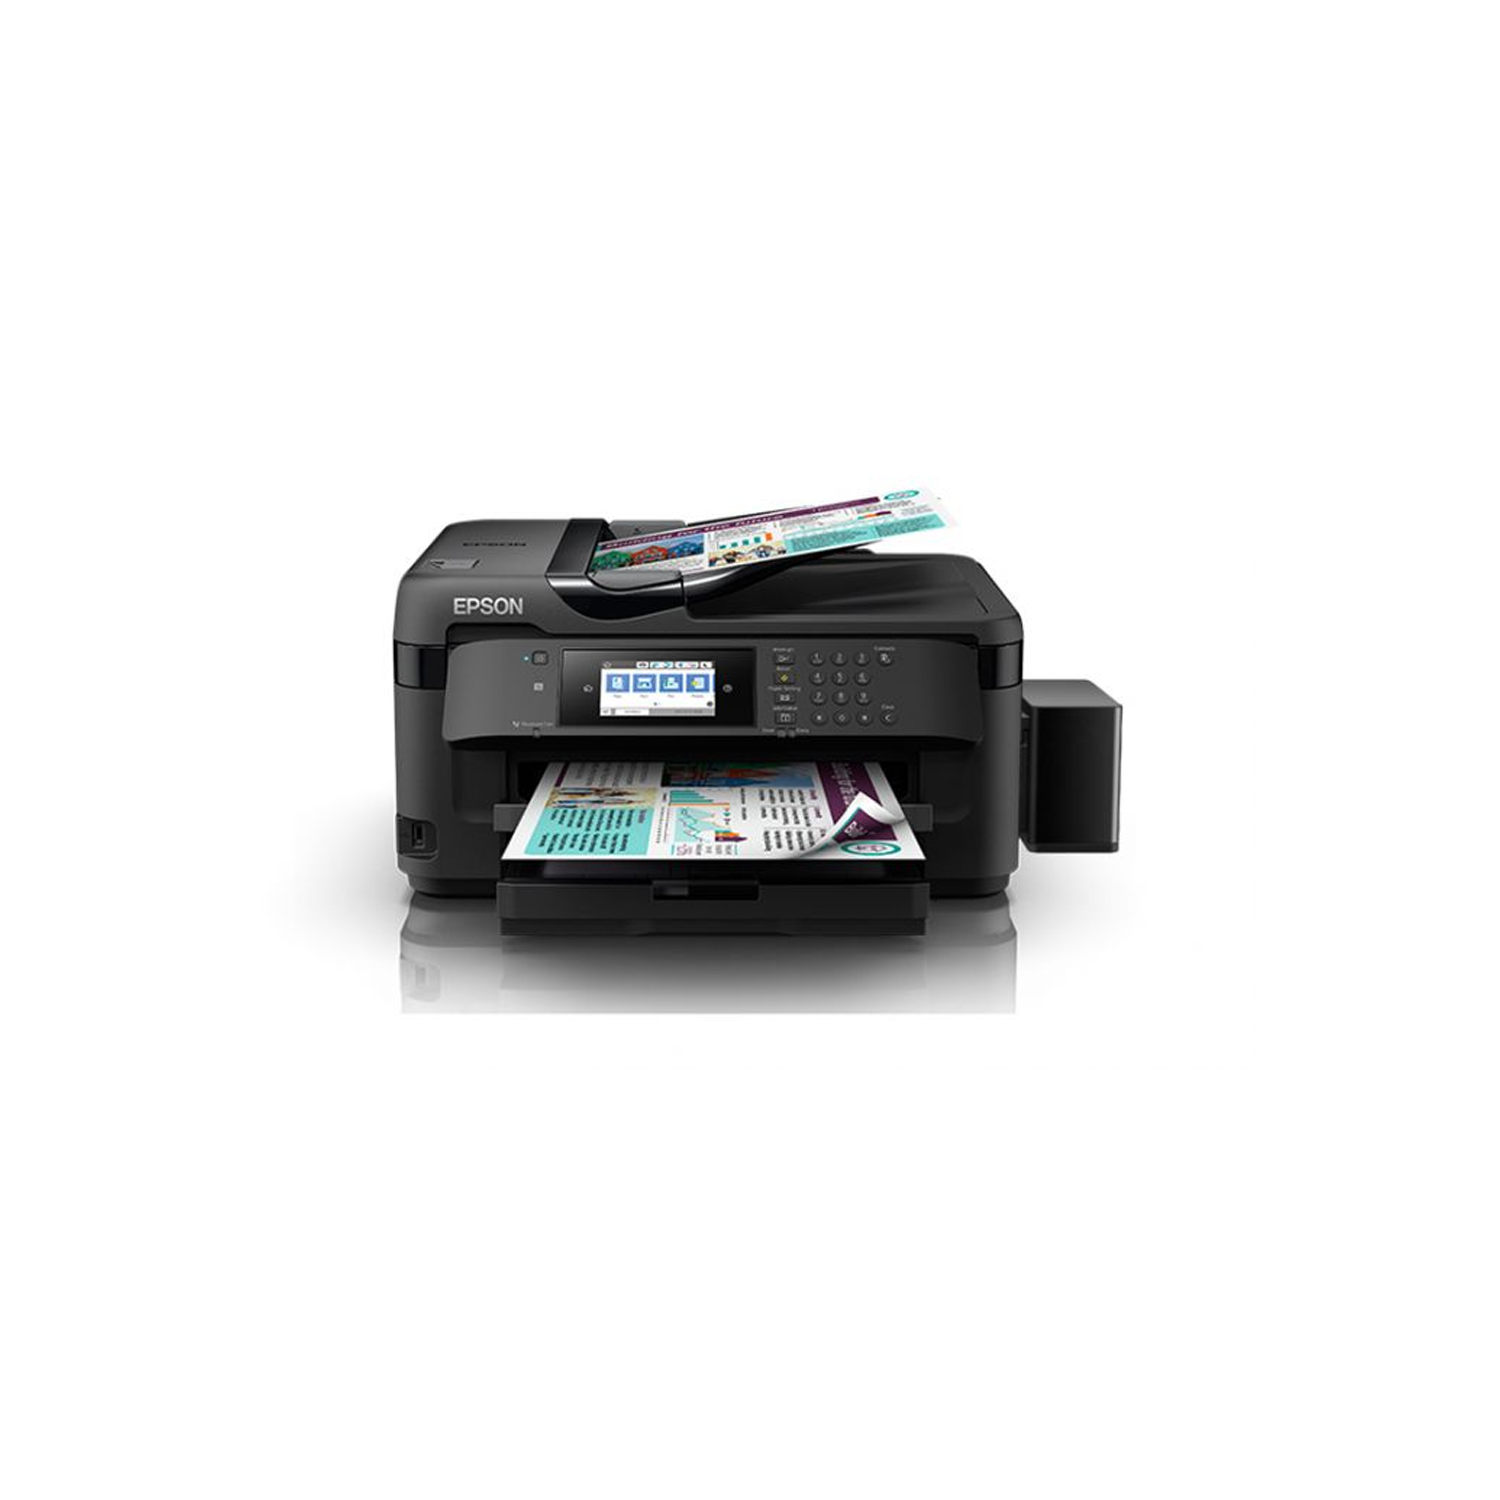 Epson WorkForce WF-7611 A3 Wi-Fi Duplex Printer